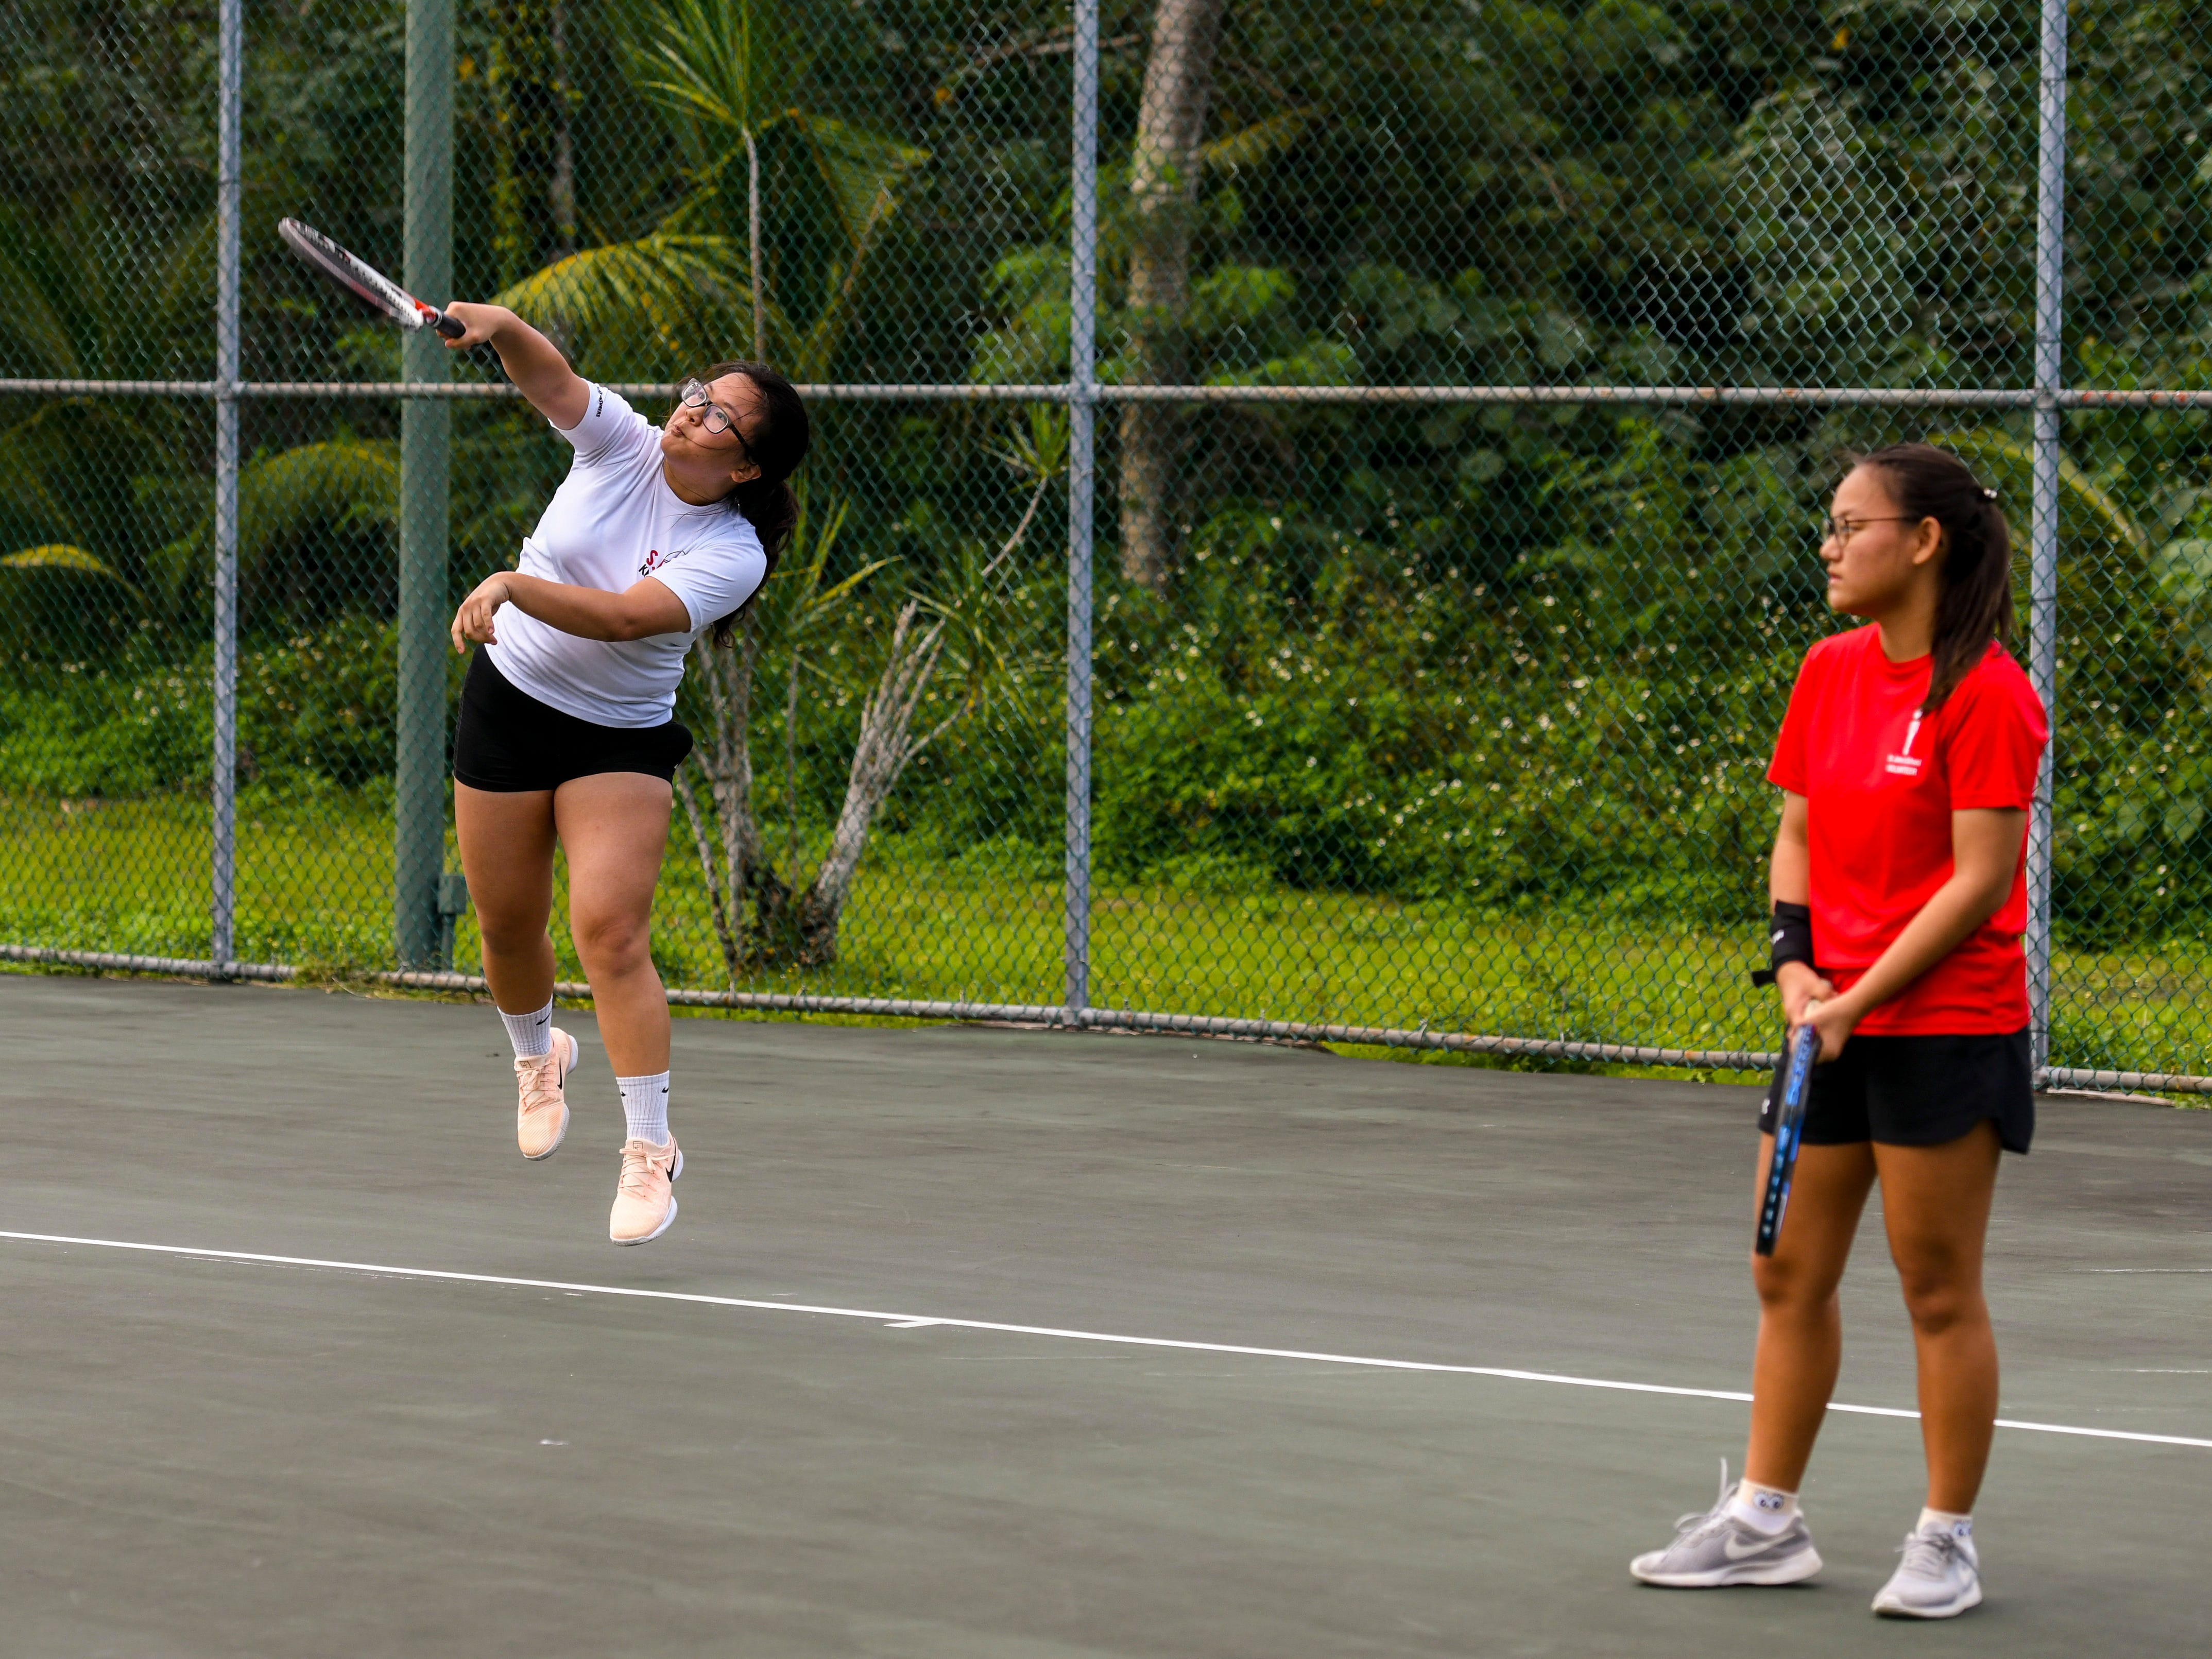 St. John's Knights' Aprile Kim slams one over the net as she and doubles teammate, Rachel Seo, take on challengers from the Academy of Our Lady Guam Cougars during an Interscholastic Athletic Association of Guam tennis match at the Rick Ninete Tennis Center in Hagåtna on Thursday, Jan. 31, 2019.